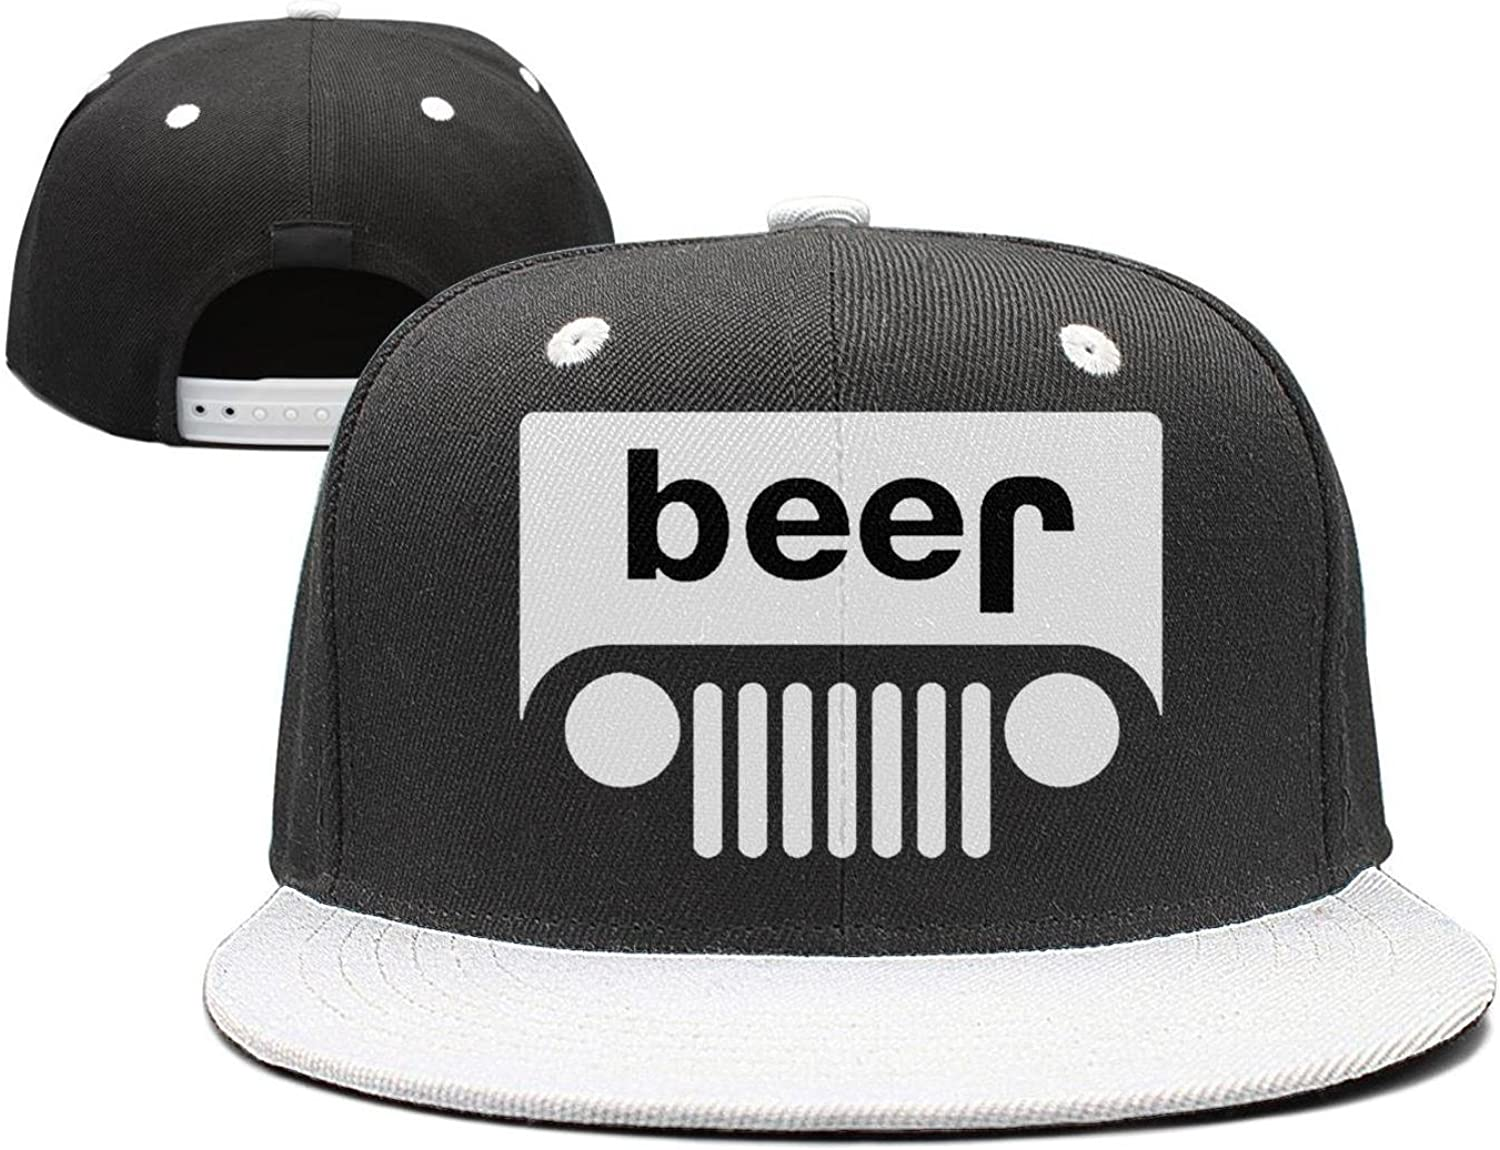 Coolhat Womens Mens Adult Beer Drinking Wool Adjustable Sun Cap